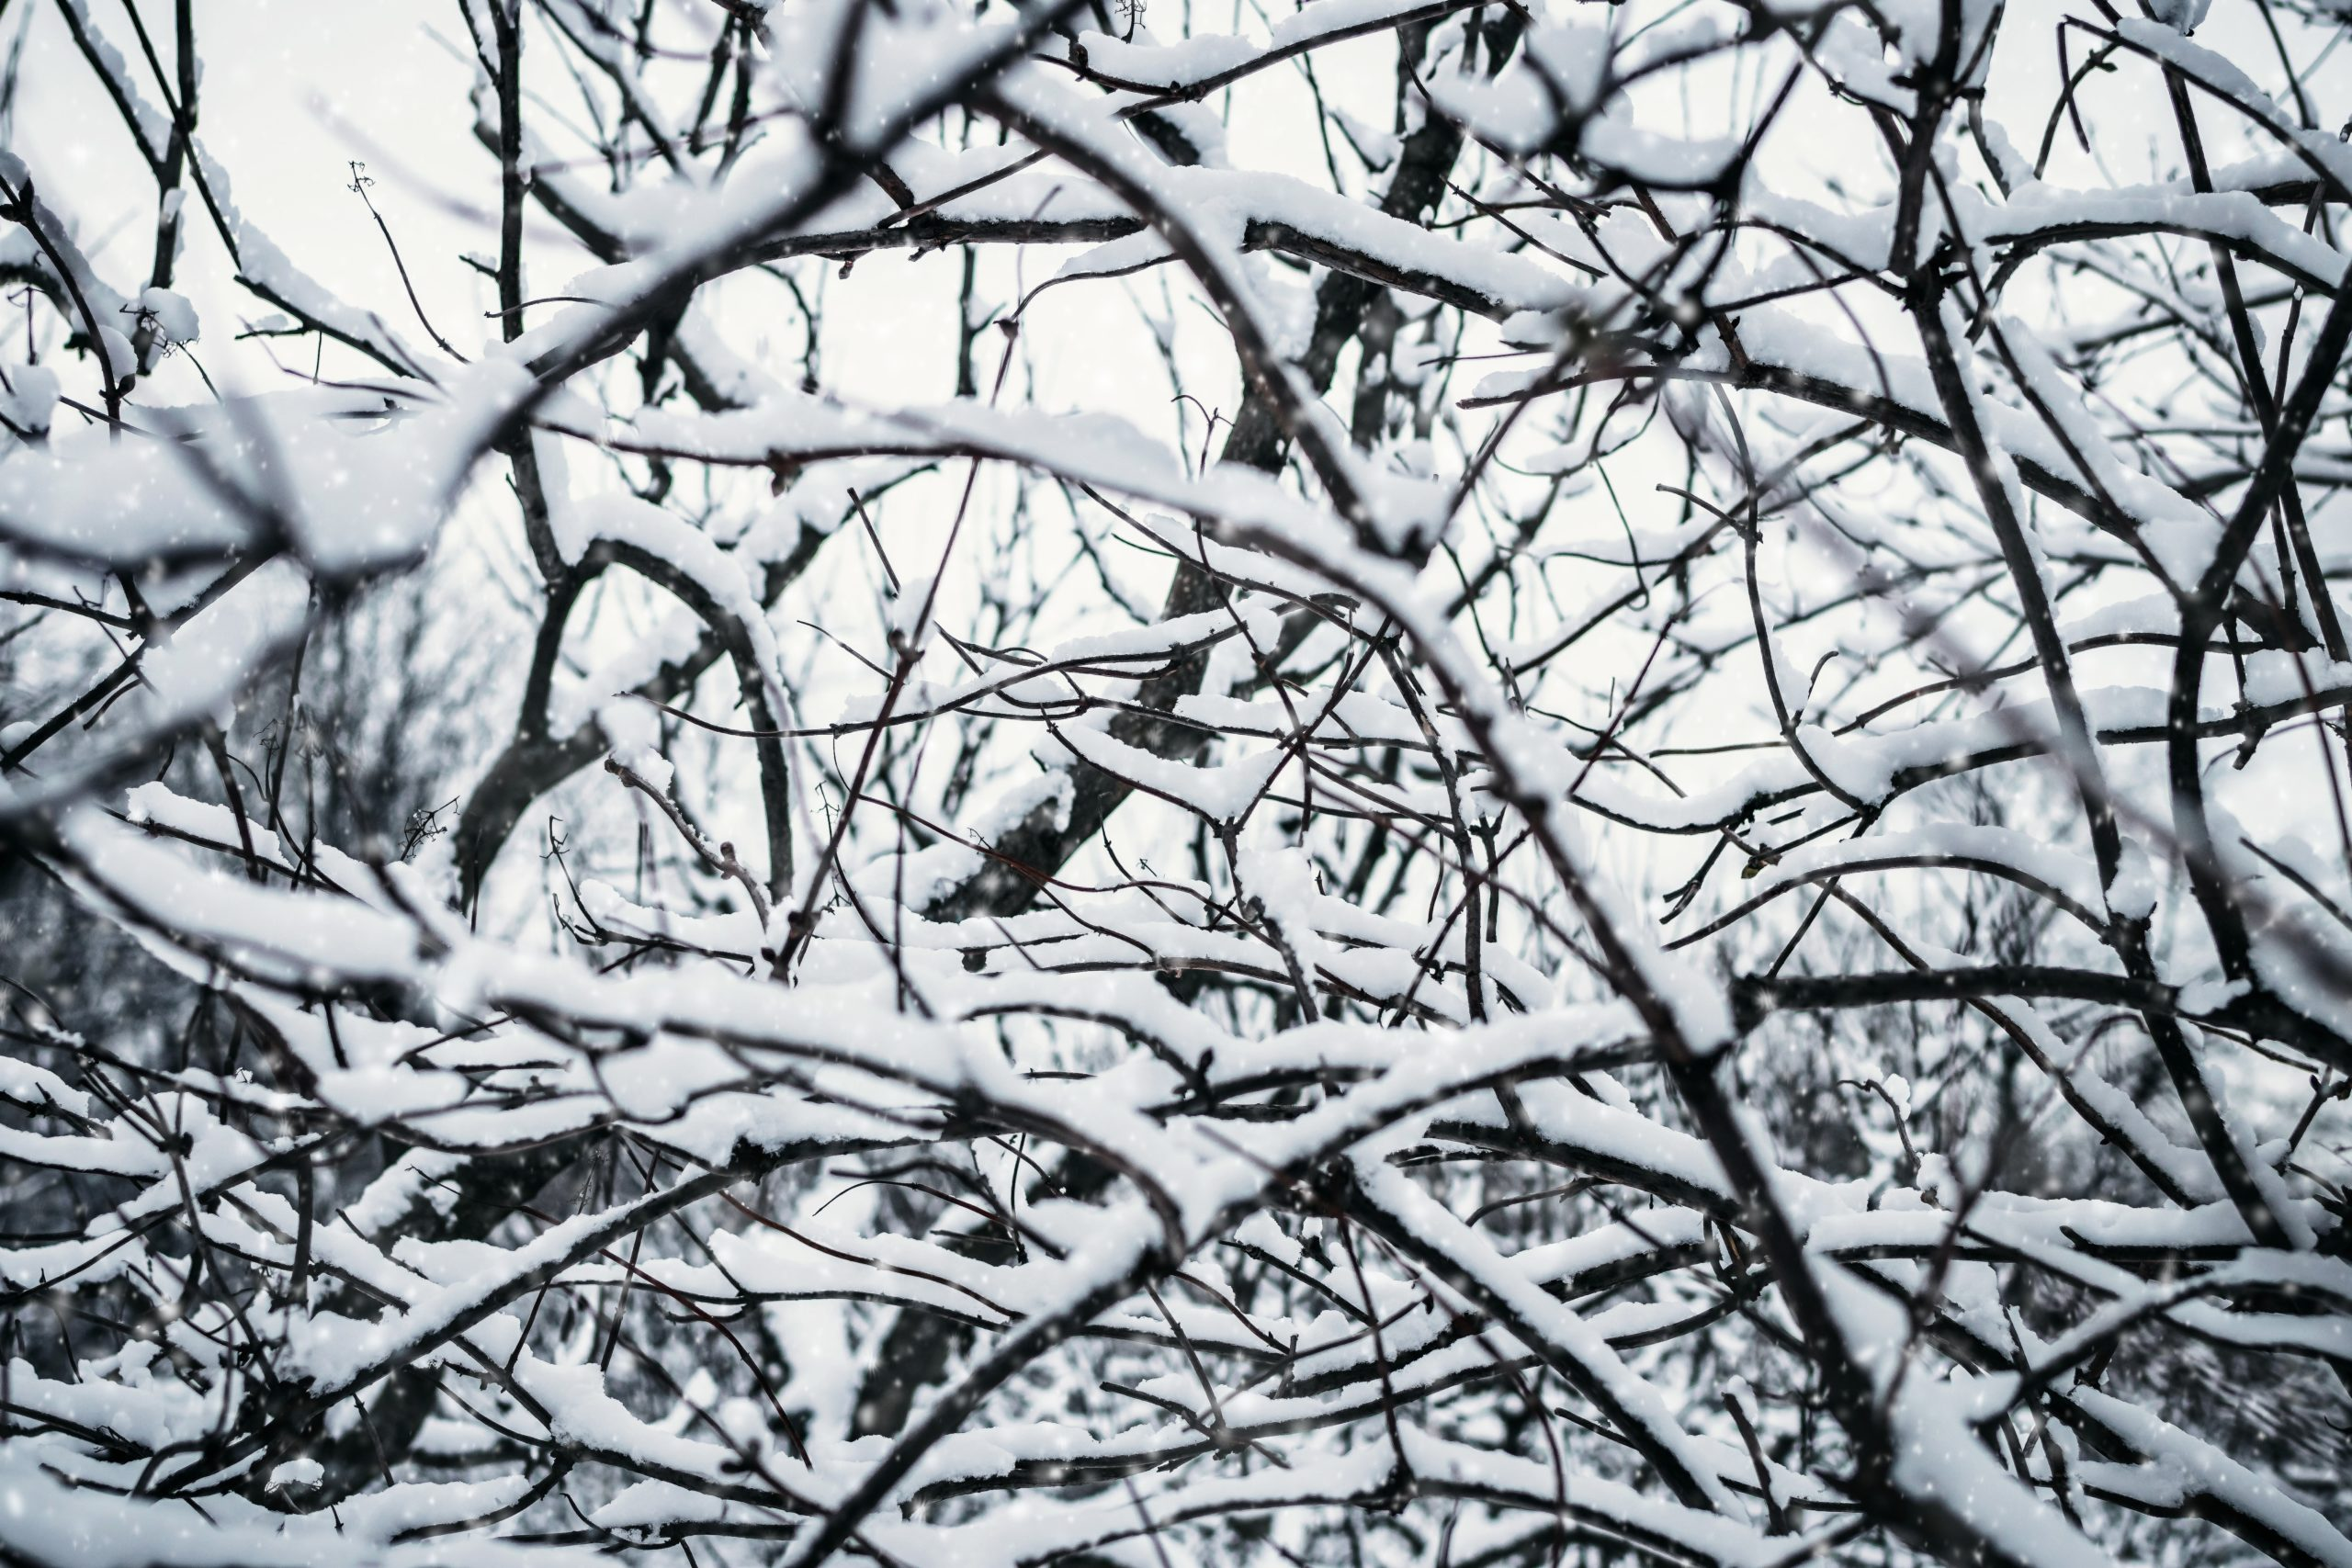 tree-branches-covered-with-snow-3626707